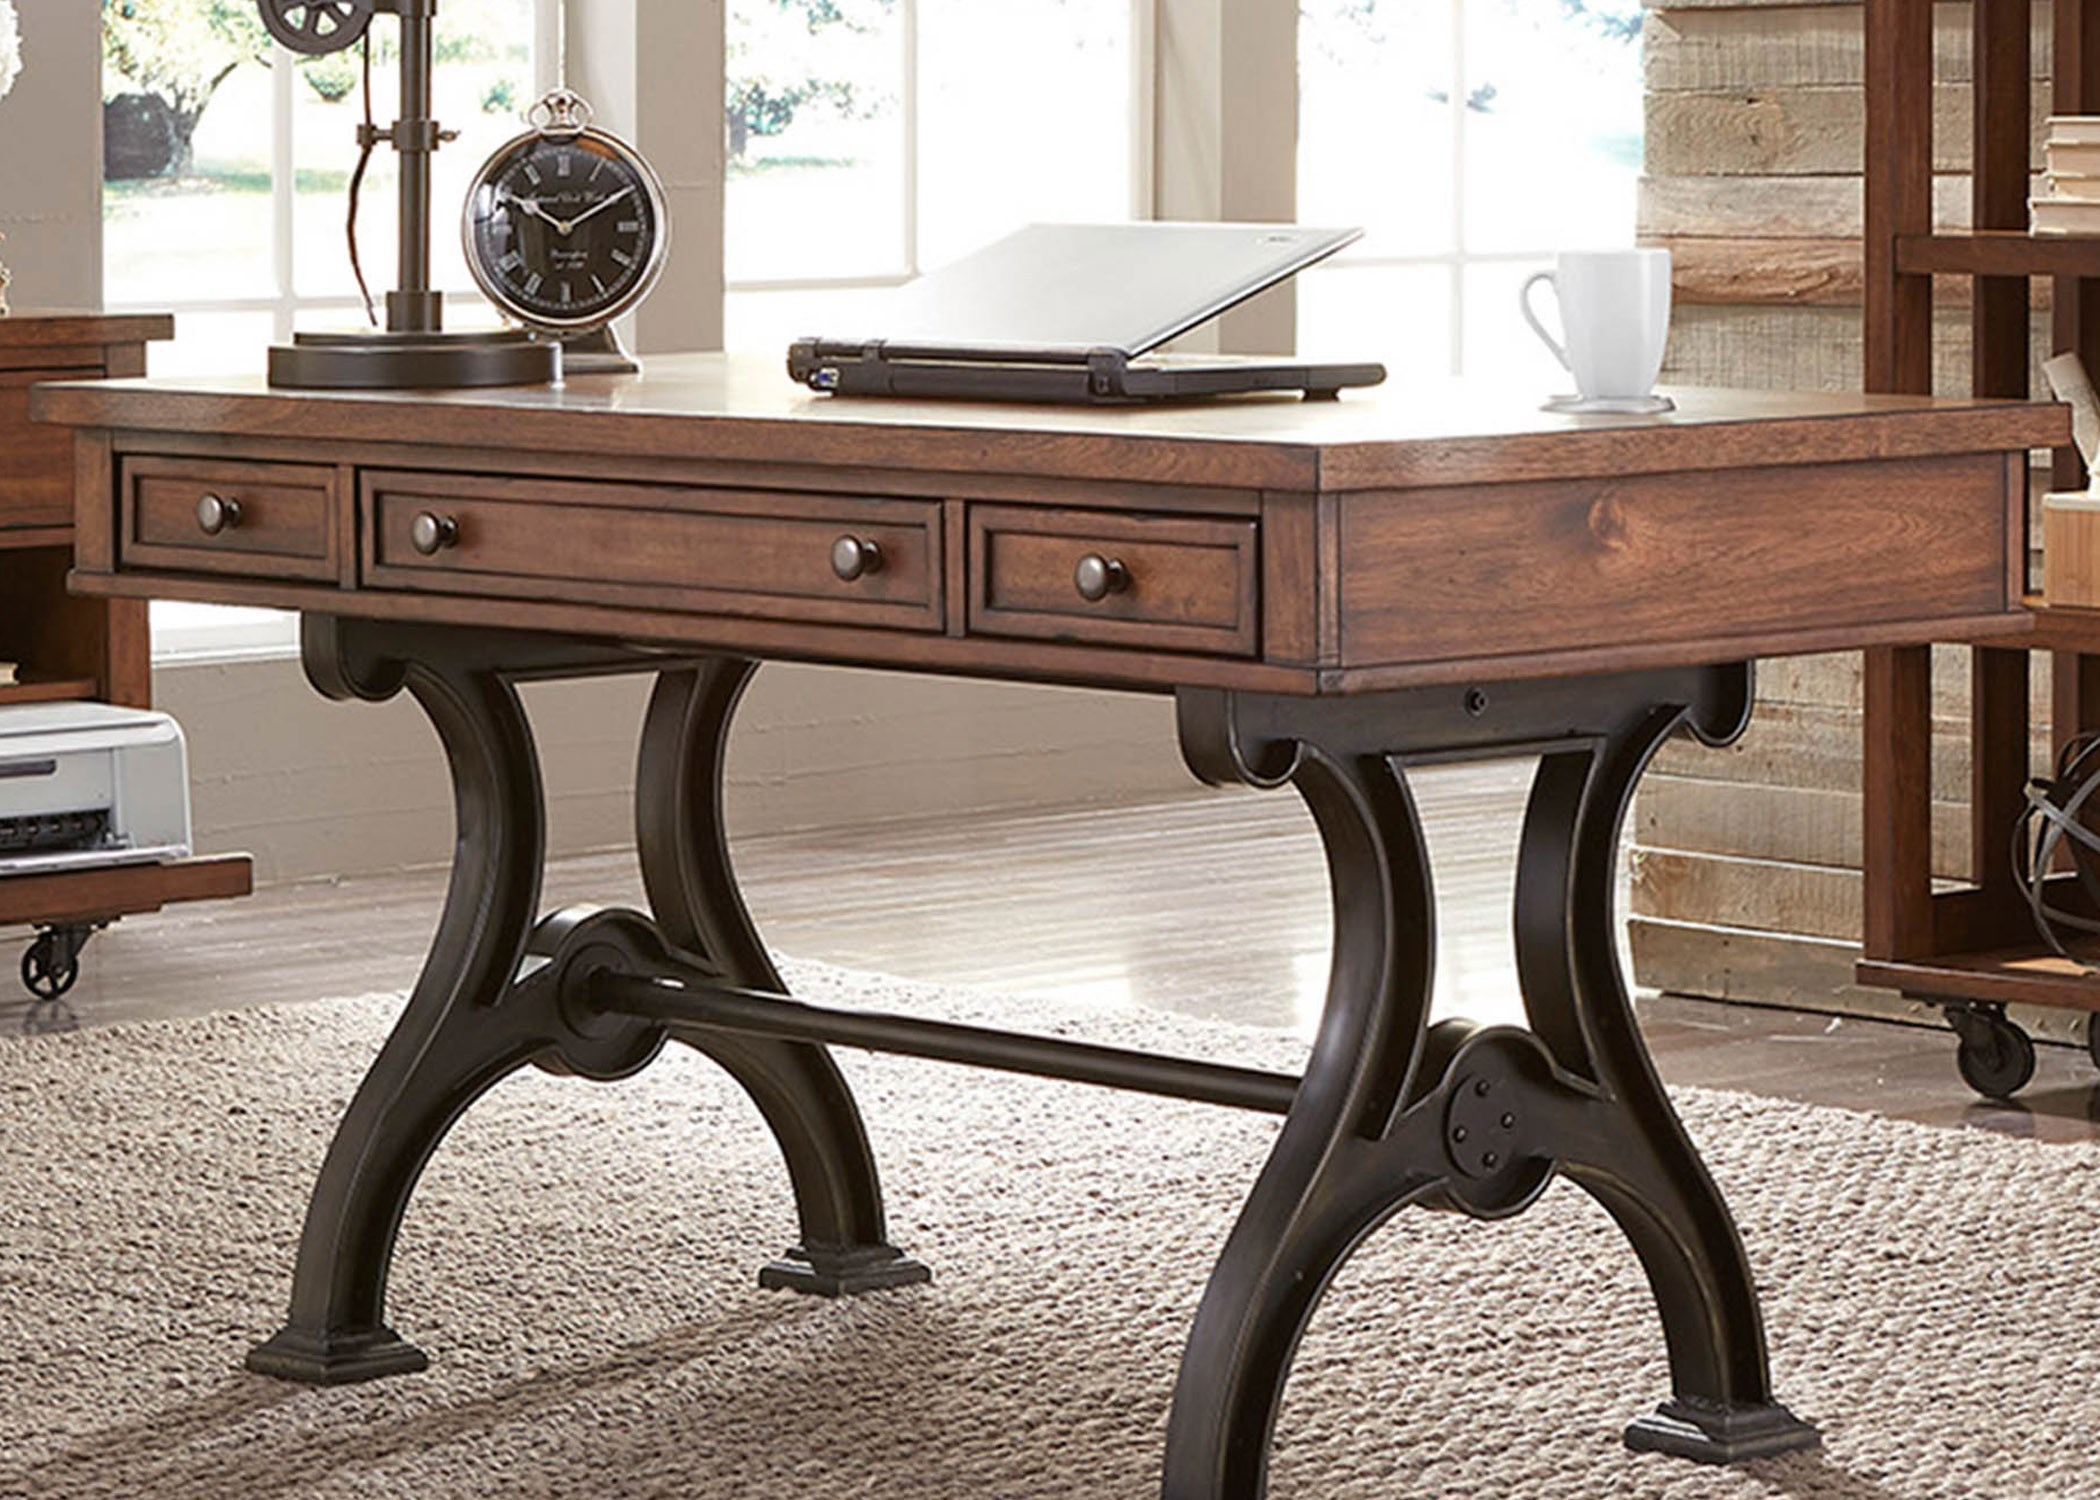 Liberty Furniture Arlington 411 Ho107 Writing Desk With 3 Dovetail Drawers Great American Home